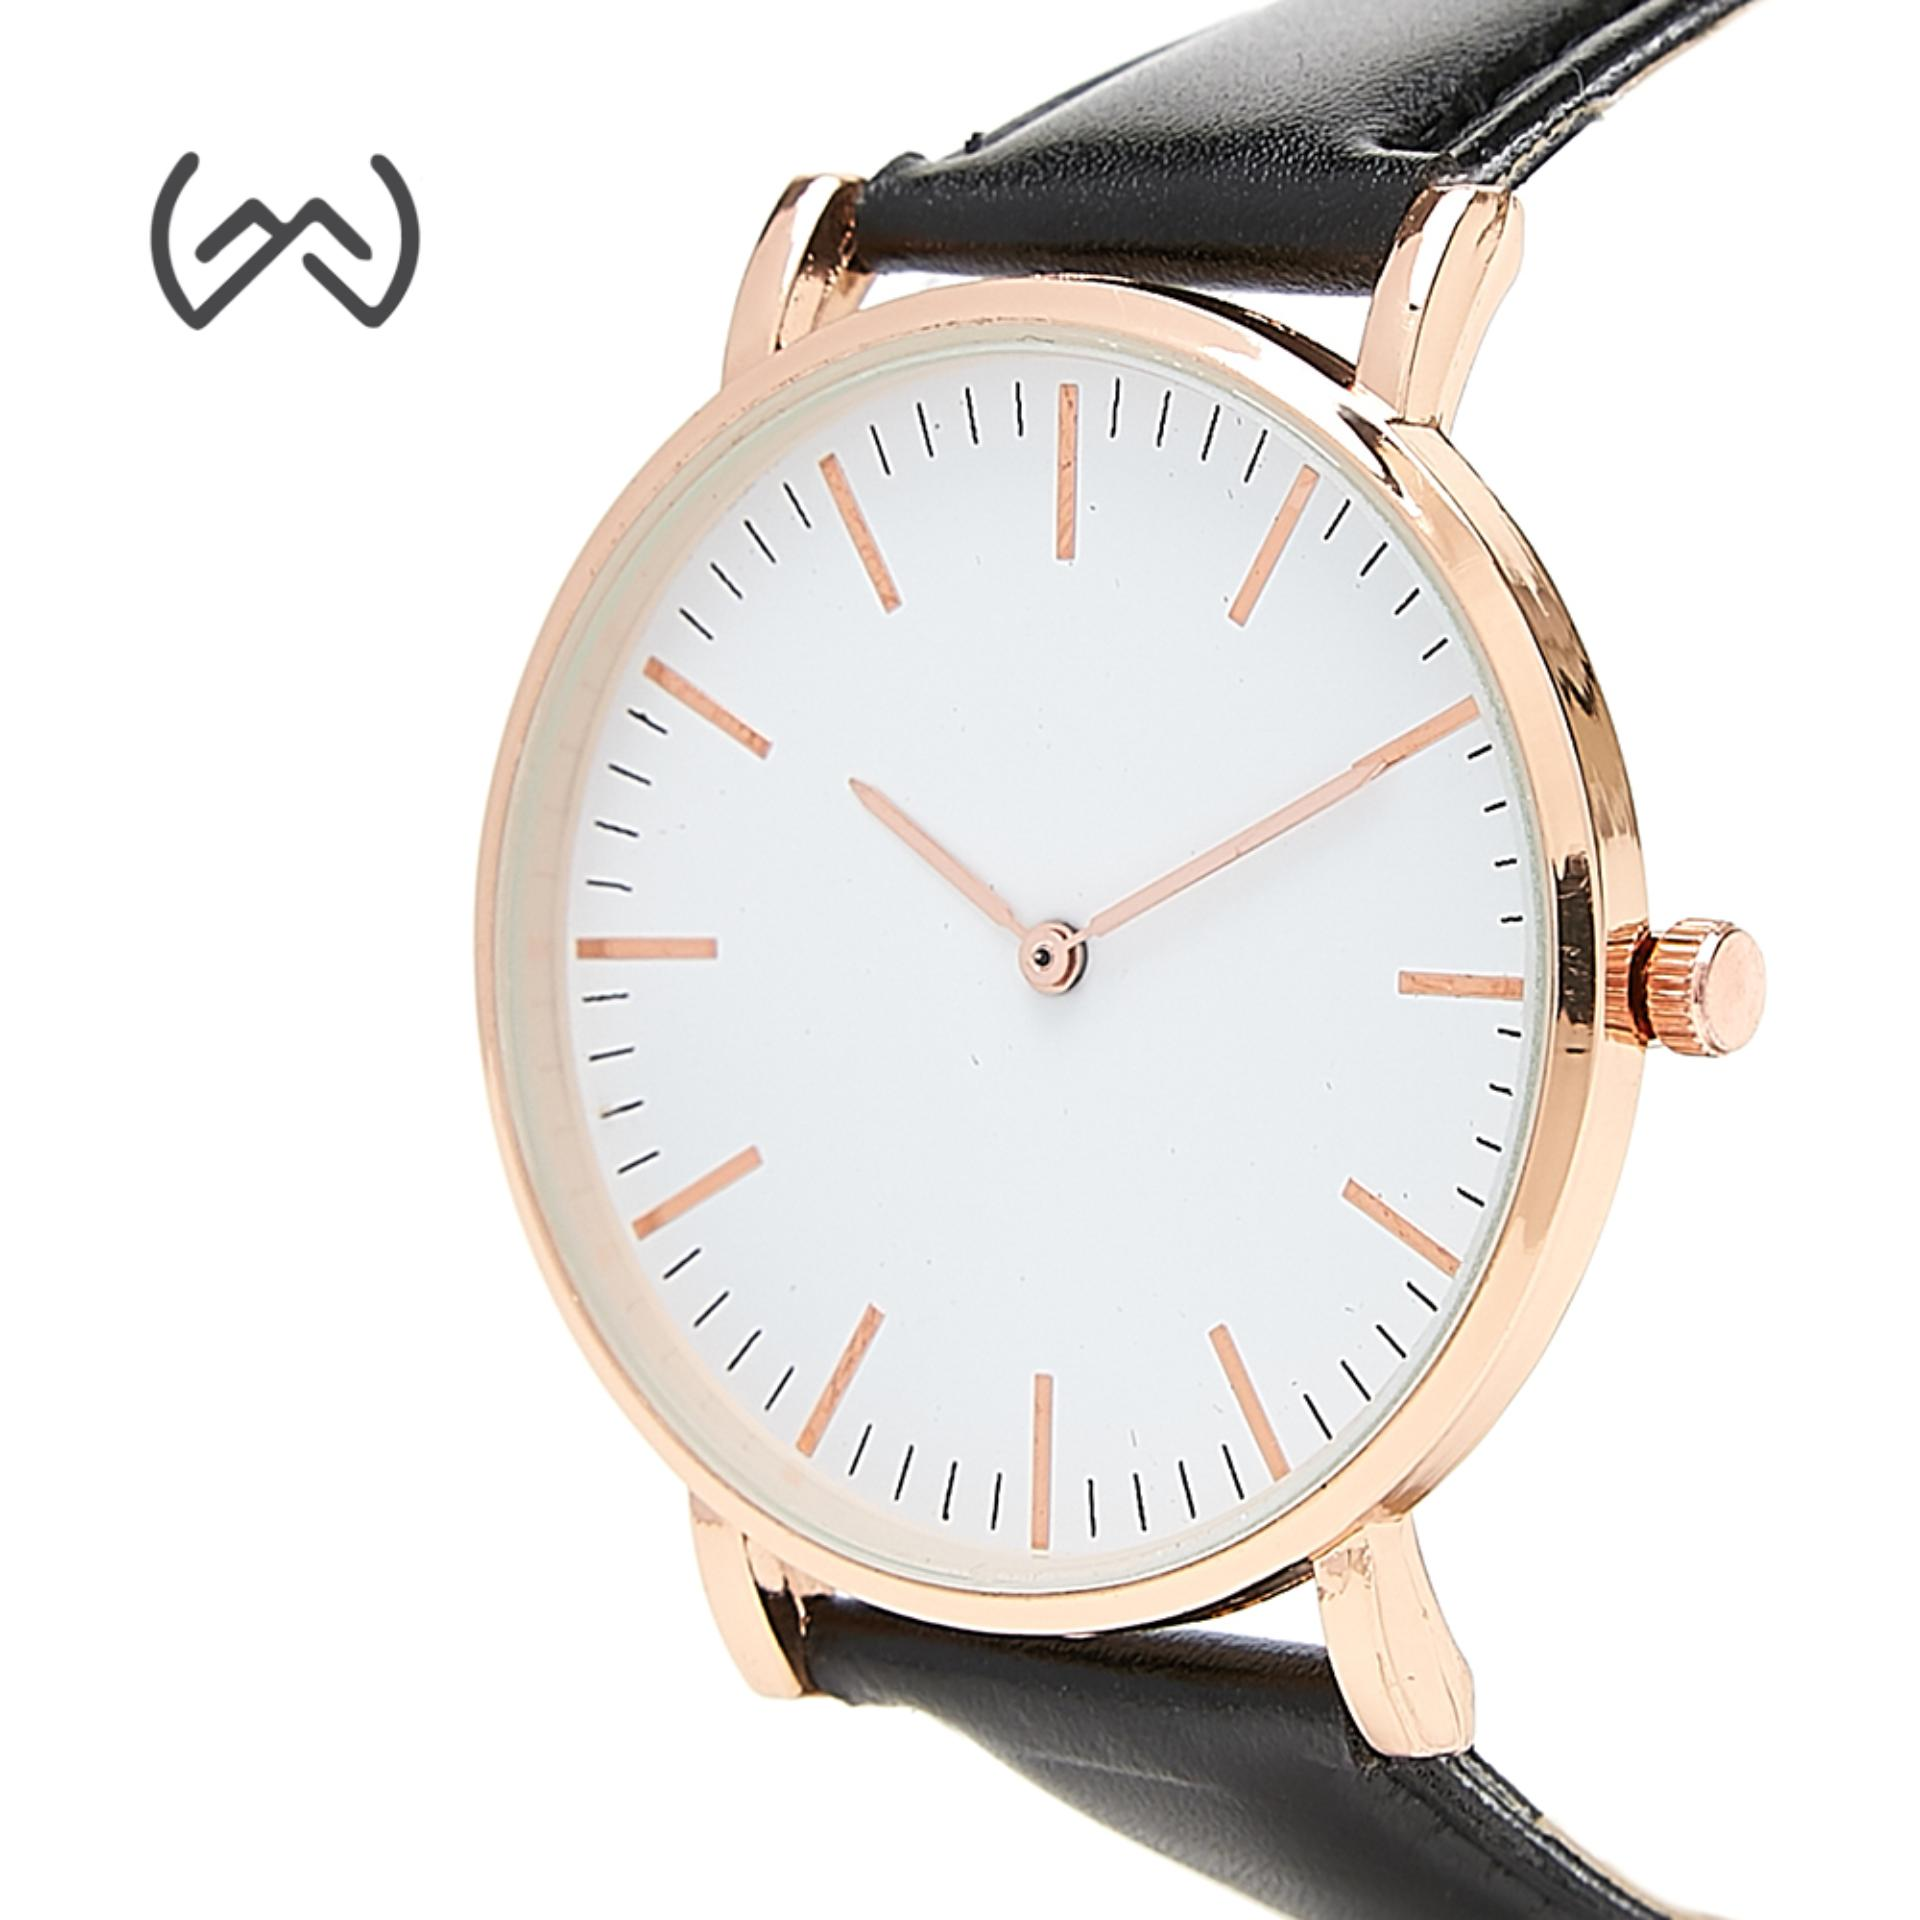 WM Korean Minimalist Leather Strap Women's Quartz Watch